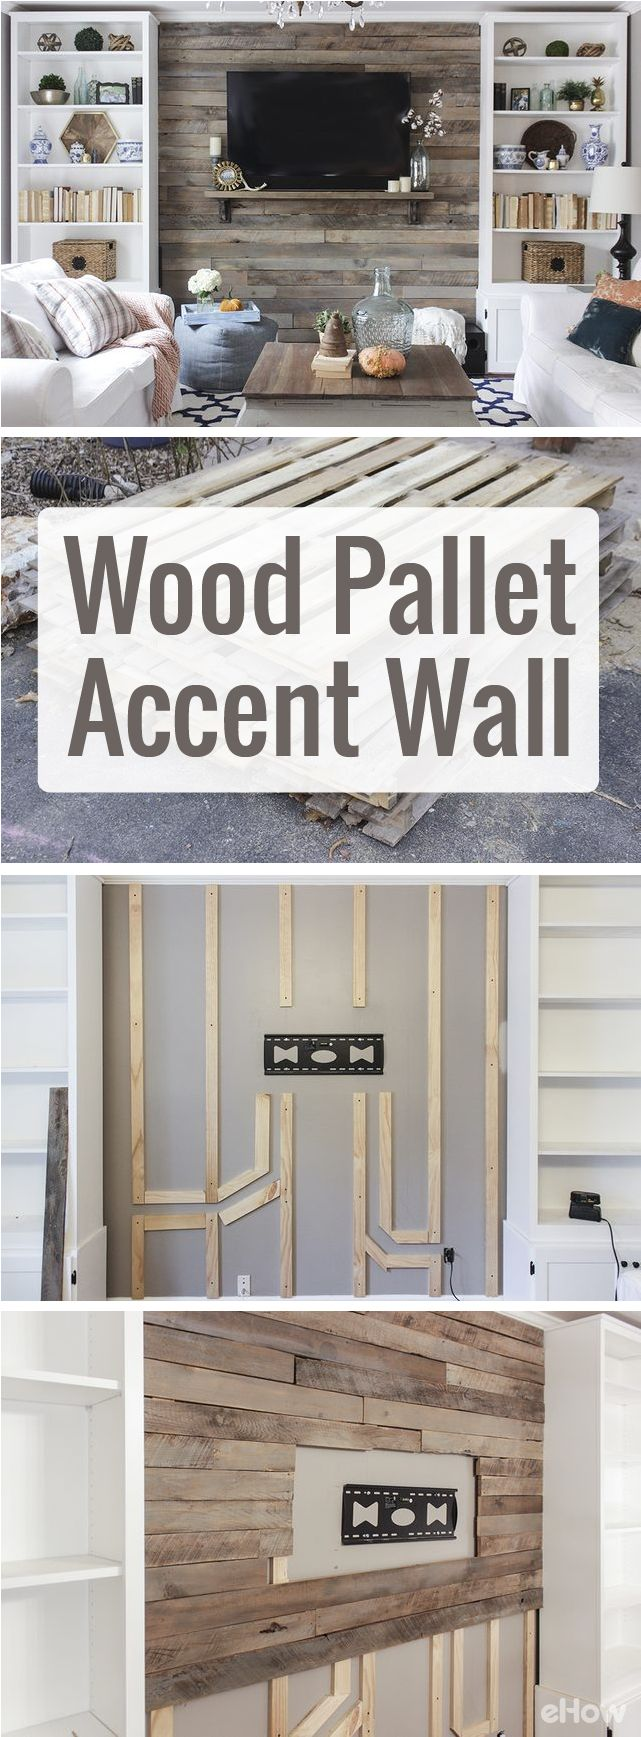 1000 ideas about fixer upper on pinterest joanna gaines - Wooden pallet accent wall ...